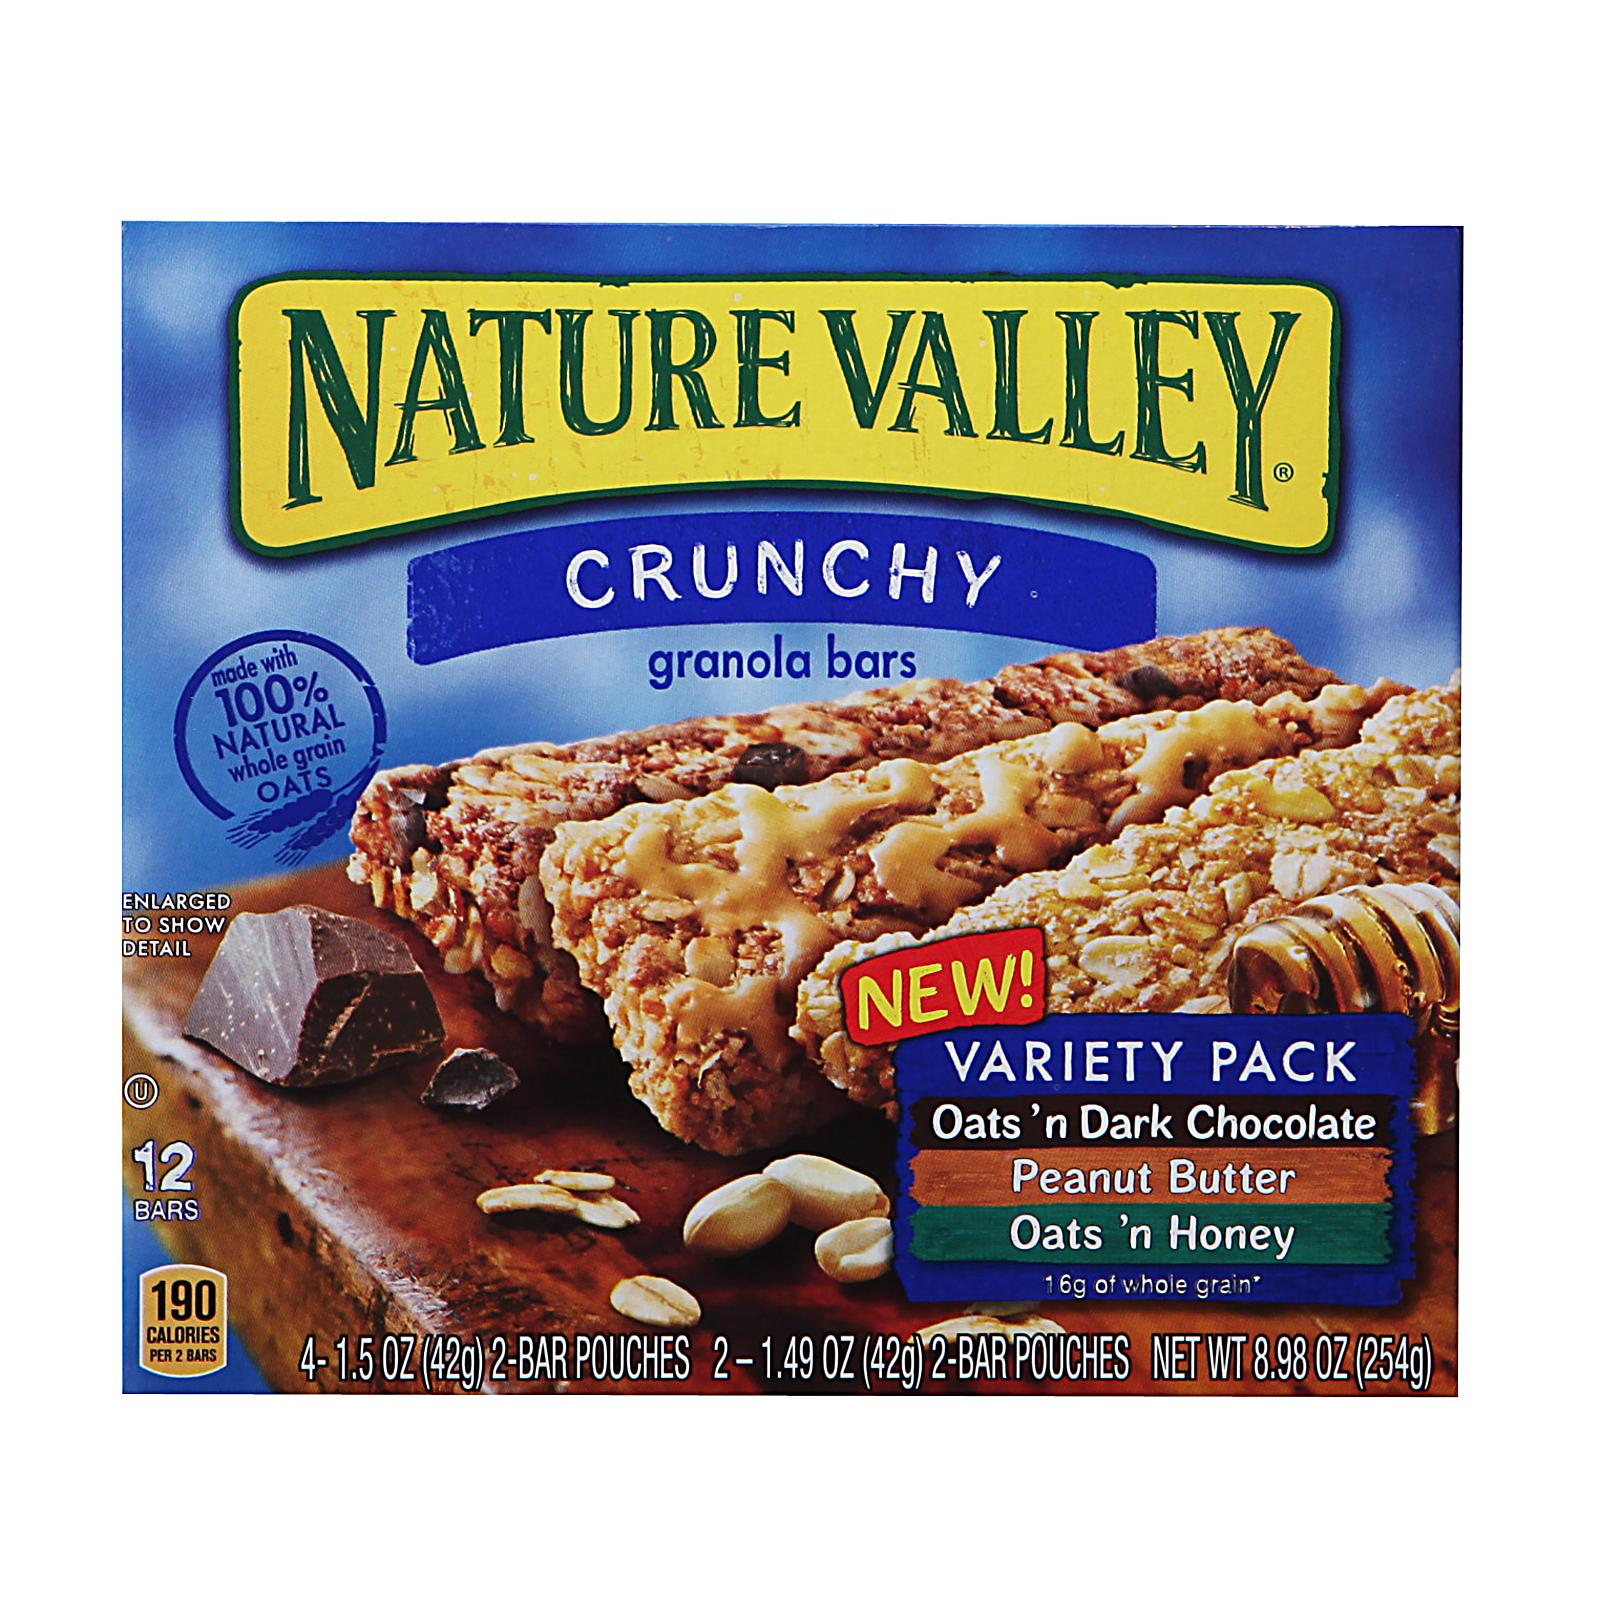 Nature Valley Variety Pack Crunchy Granola Bars By Redmart.